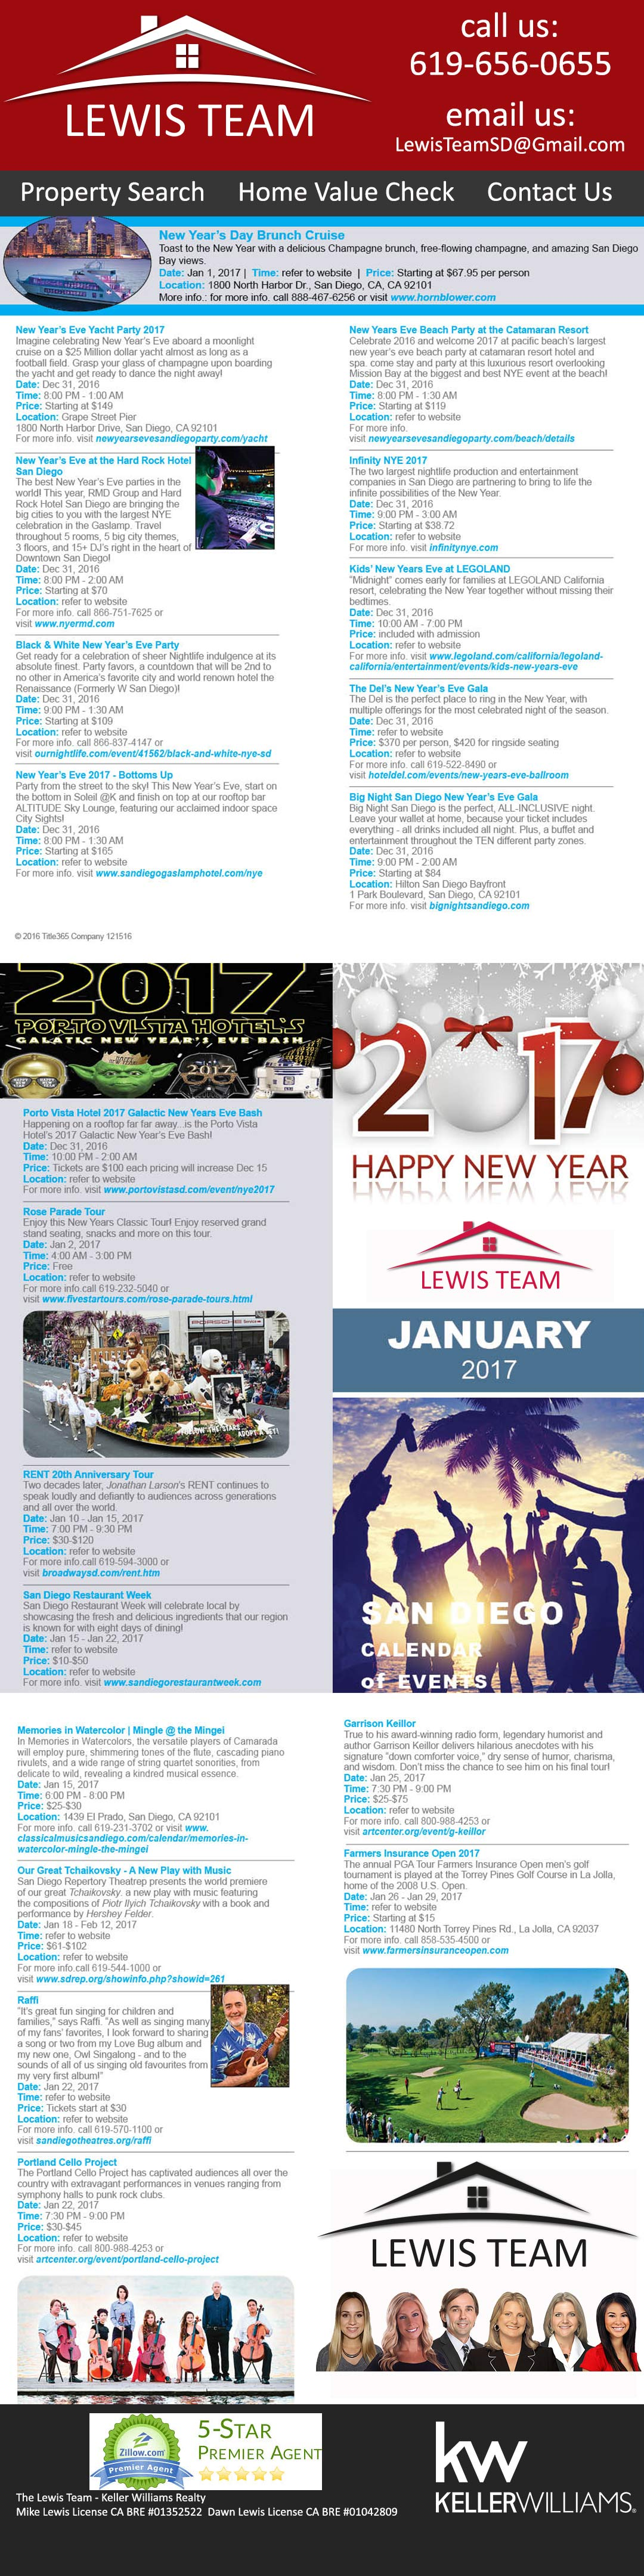 The-Lewis-Team-Calendar of Events in San Diego January 2017